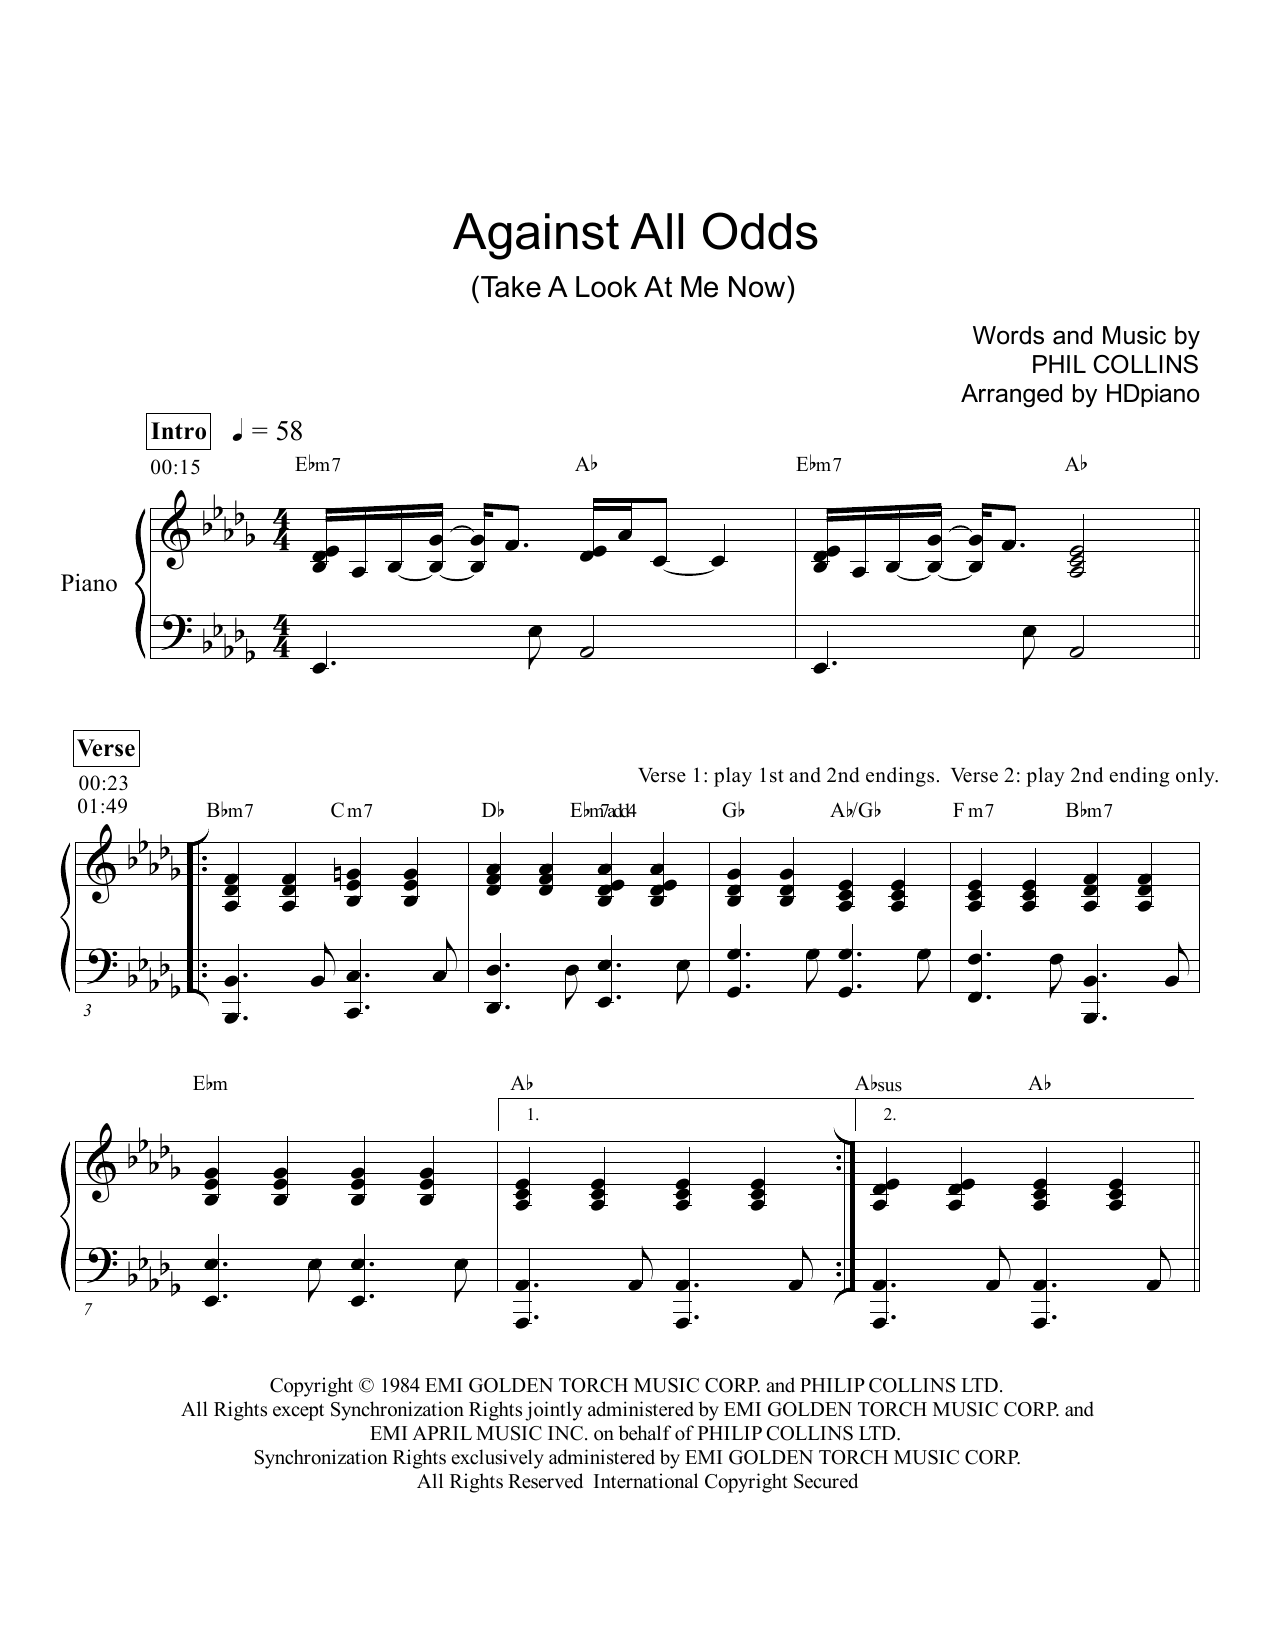 Against All Odds (Take a Look at Me Now) | Sheet Music Direct | 1276 x 1650 png 155kB